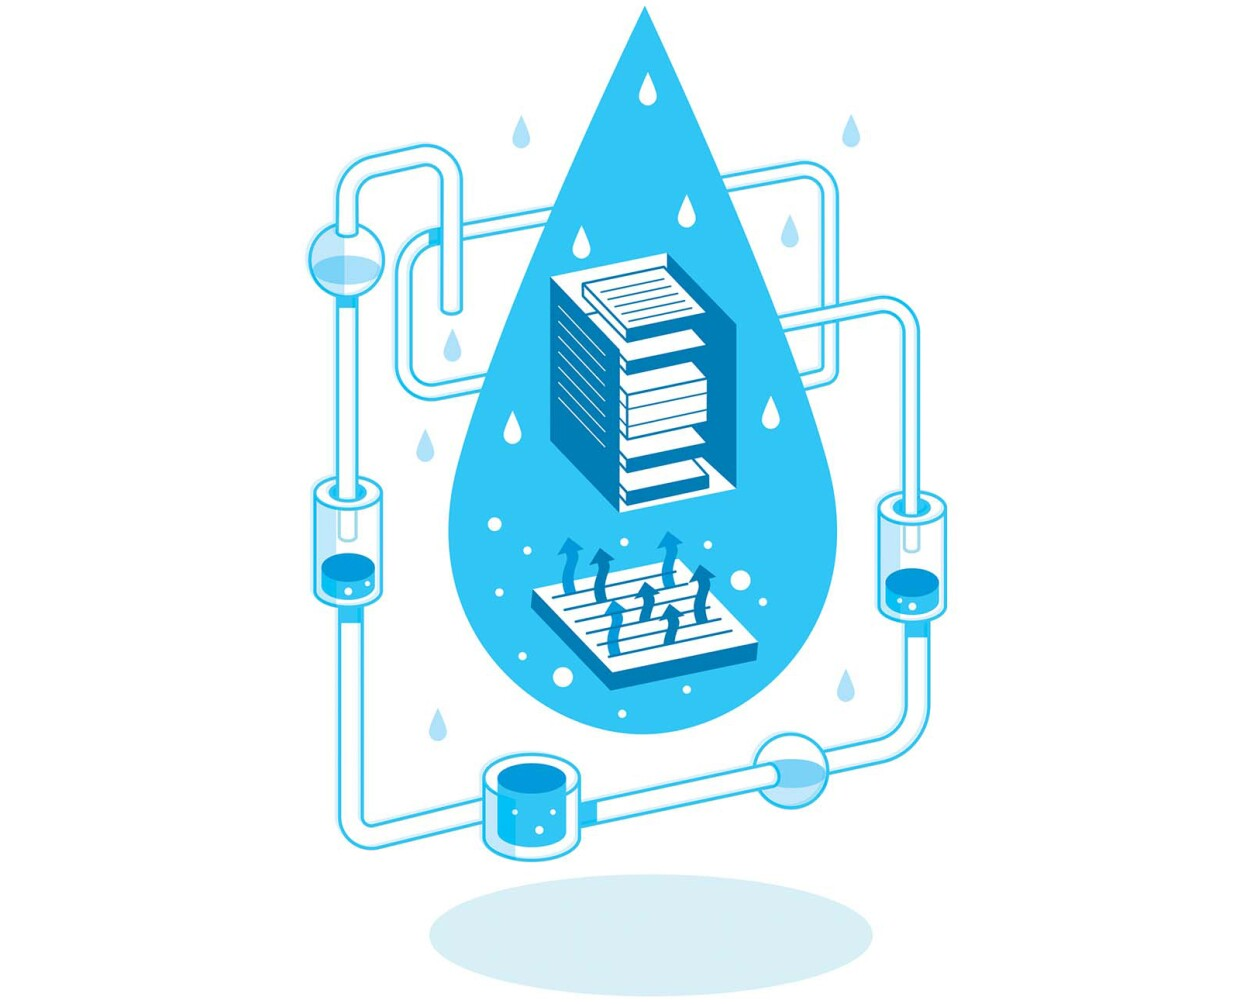 An illustration symbolizing AWS initiatives to improve water efficiency to reduce use of water for cooling data centers.